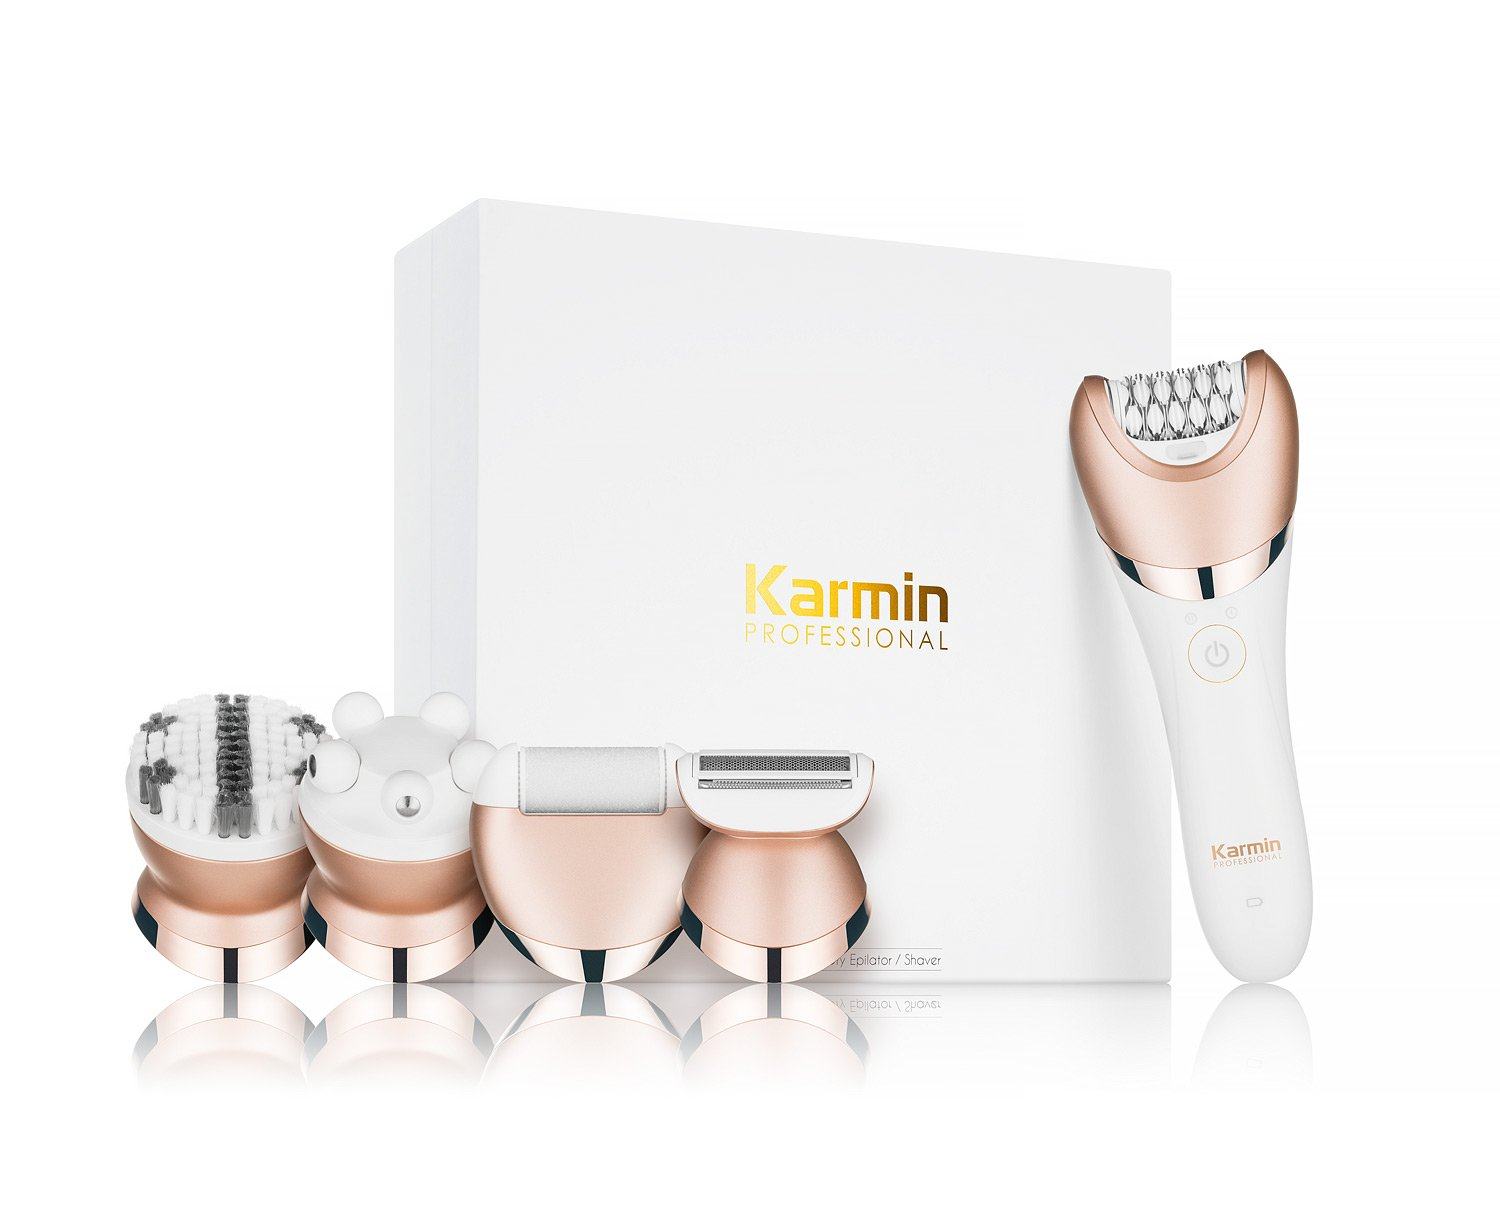 Karmin 5 in1 Wet and Dry Epilator / Shaver by Karmin